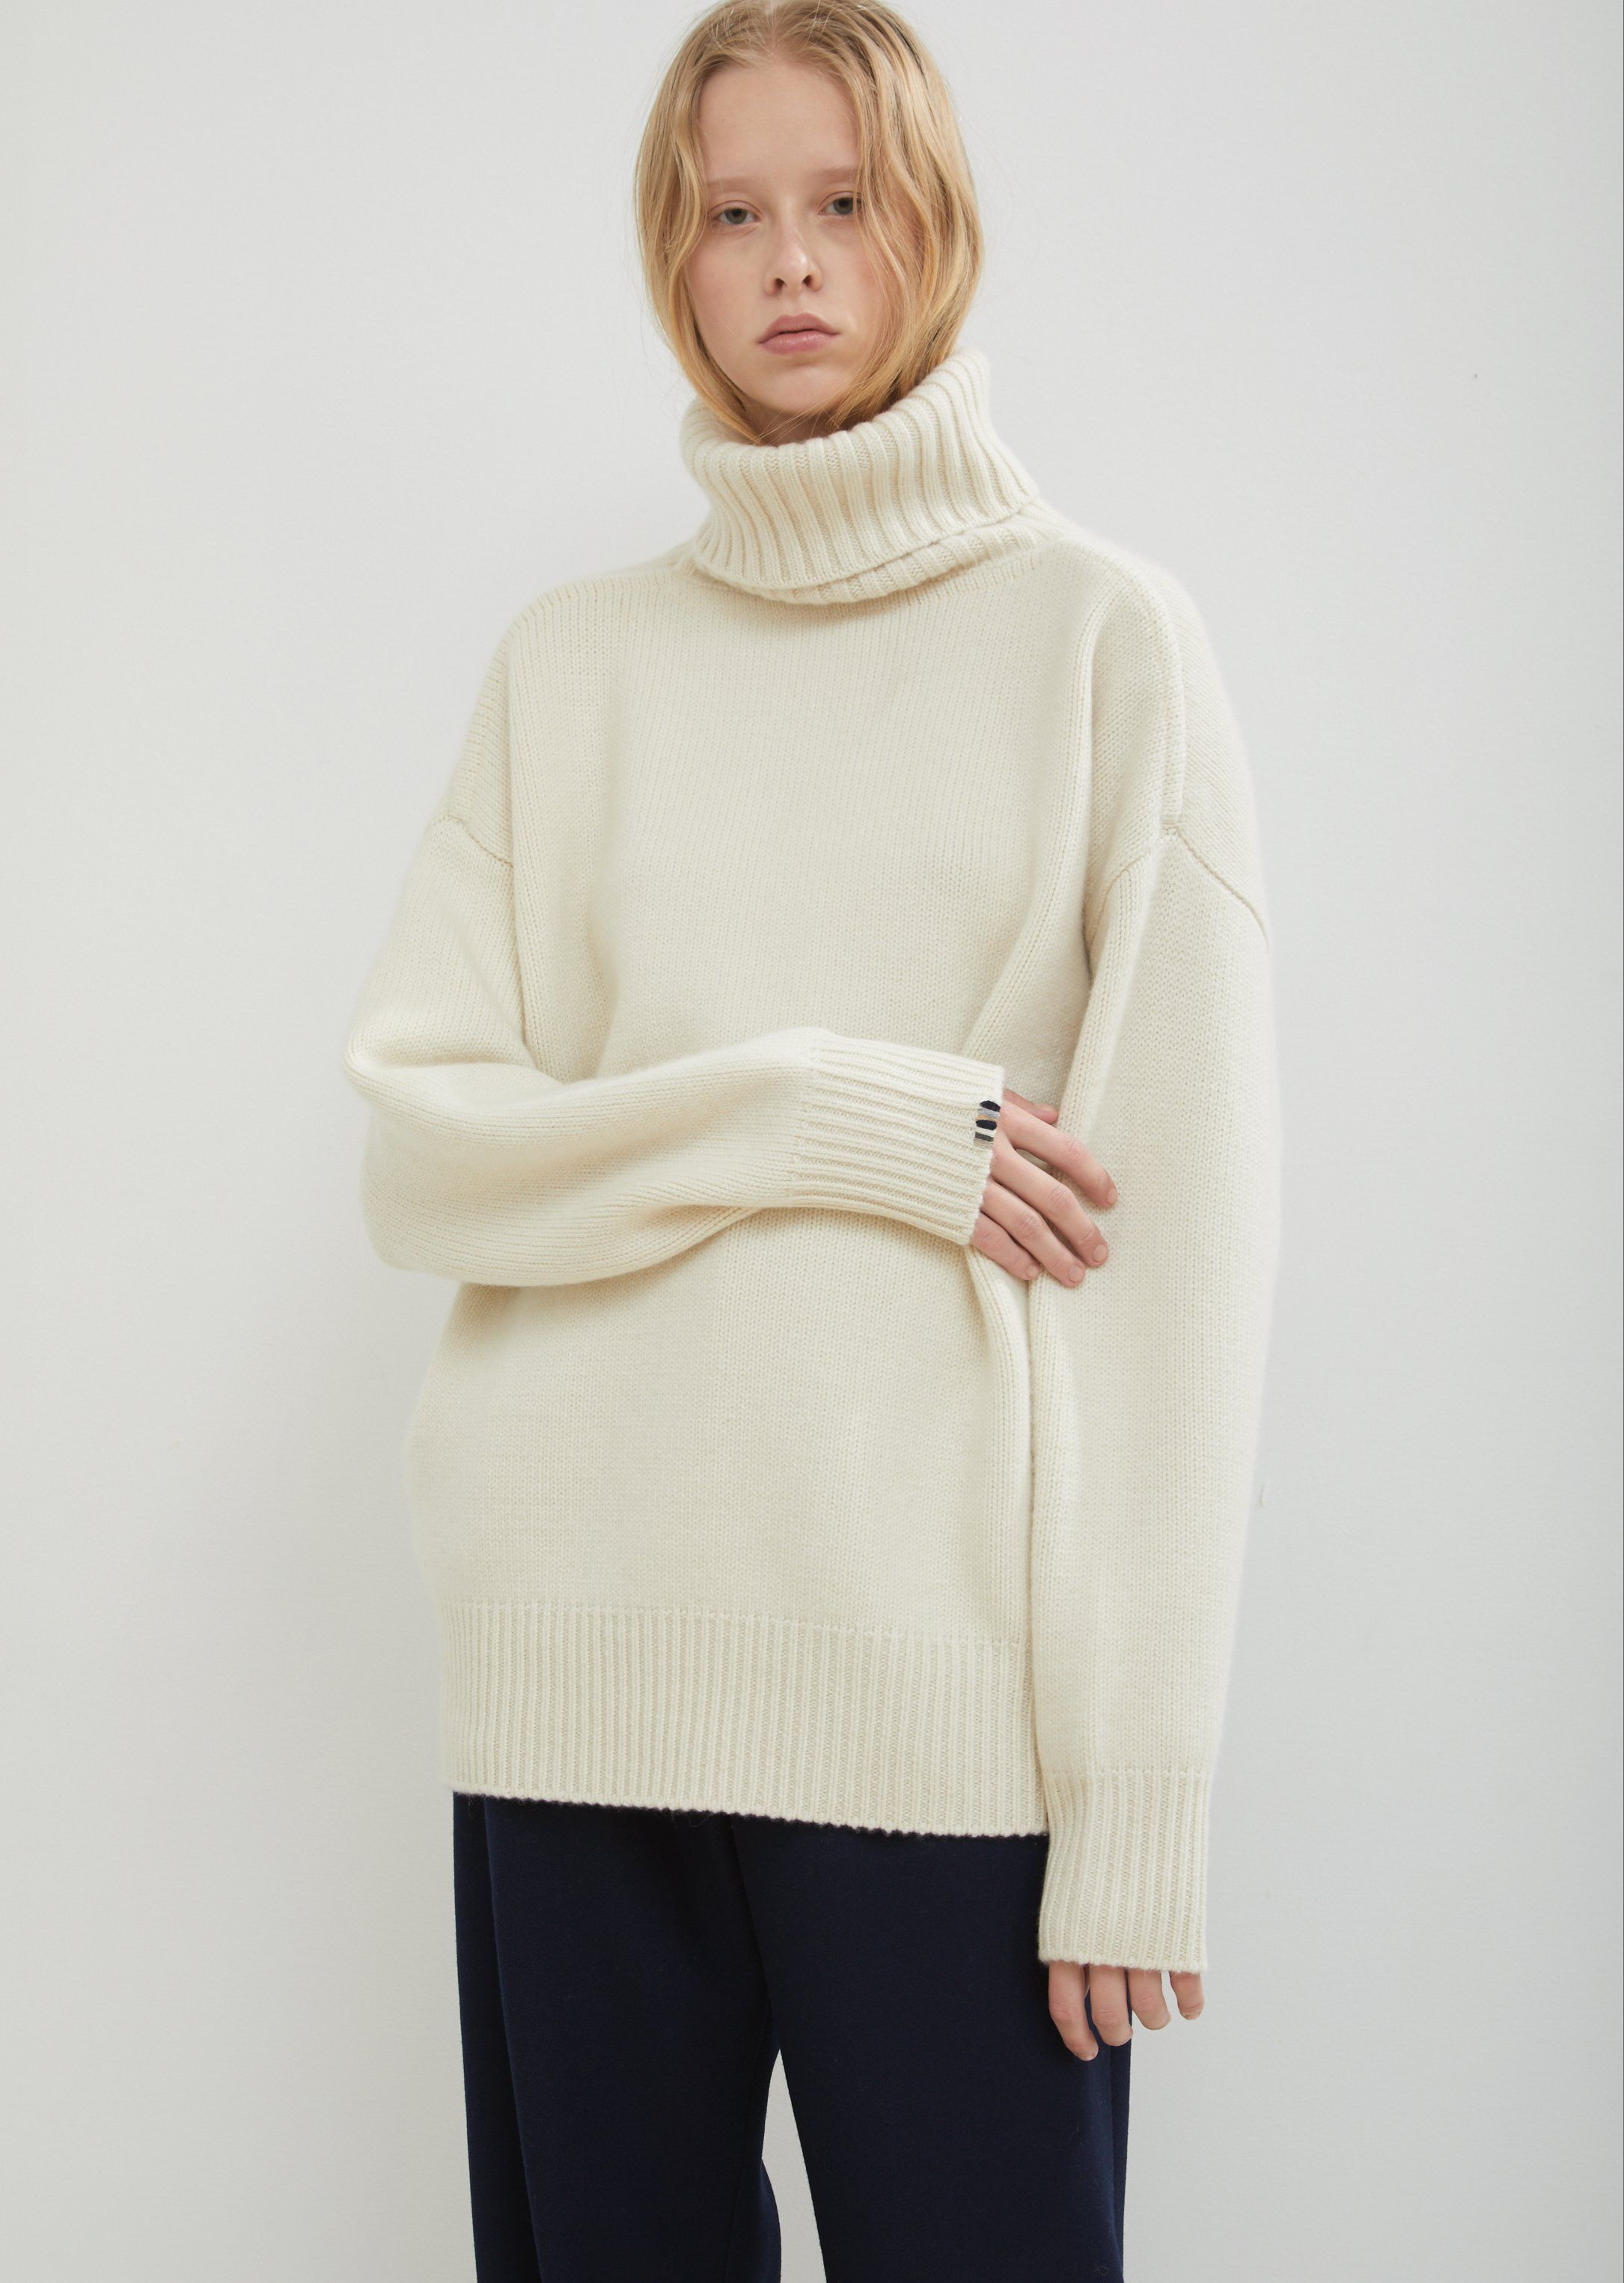 67cc1c204fe Oversize Xtra Cashmere Roll Neck Sweater - One Size / Cream ...